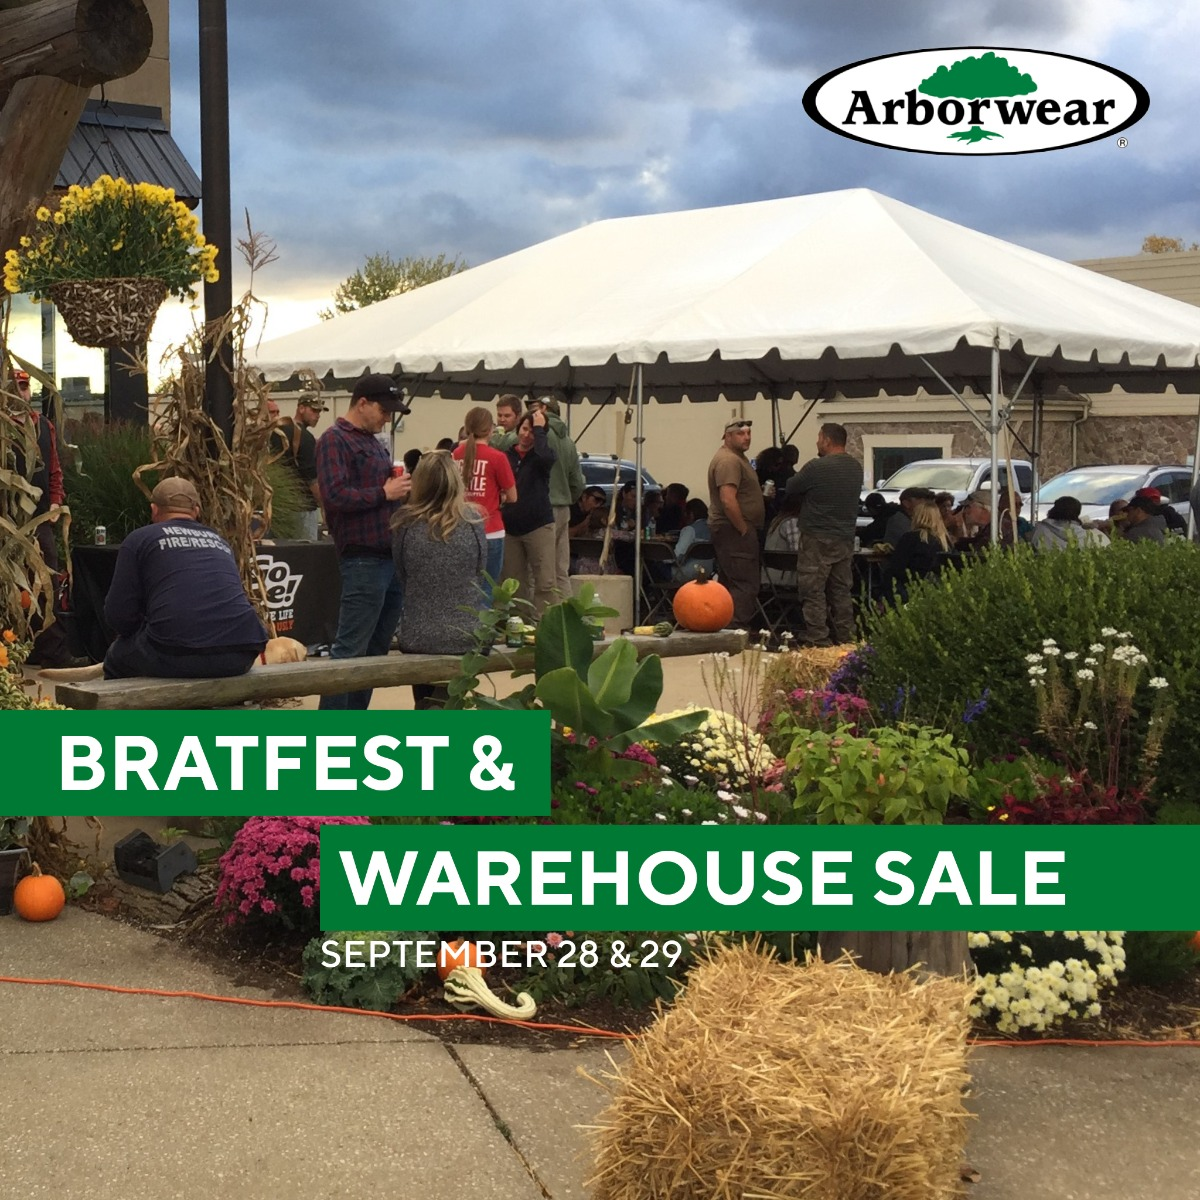 Bratfest and Warehouse Sale